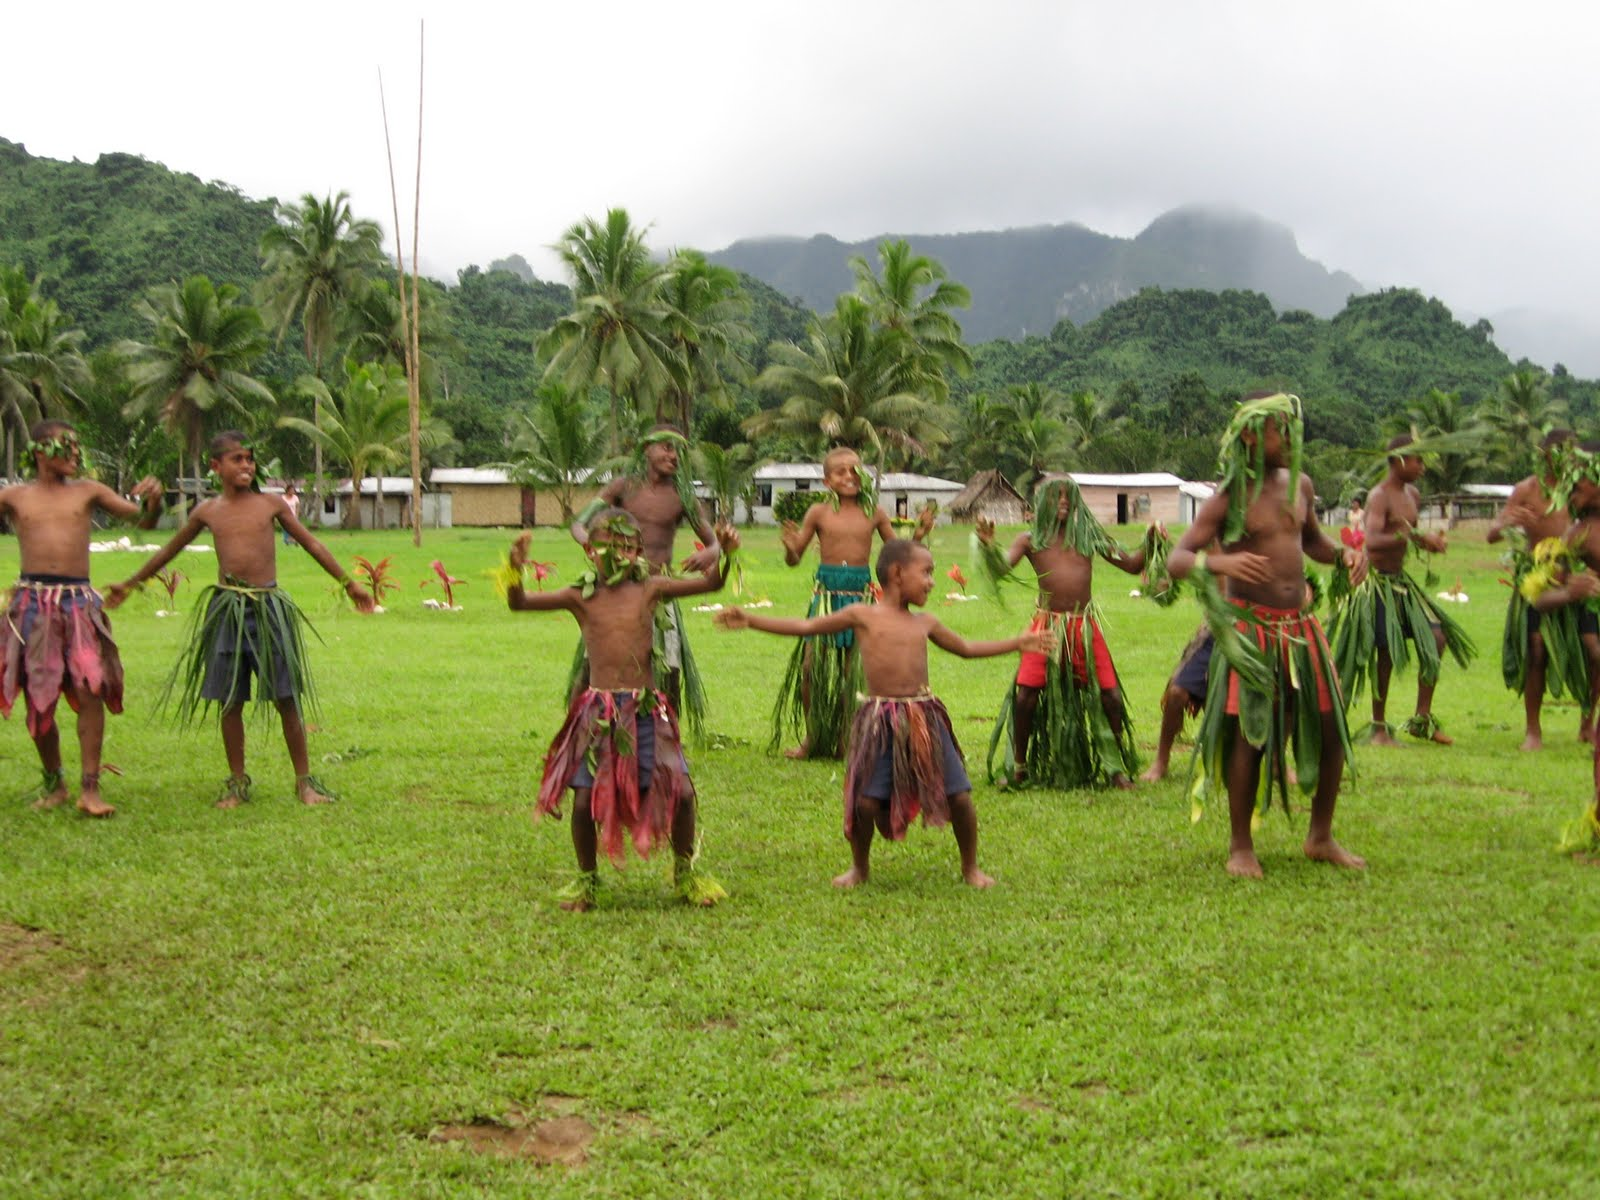 fiji essay Fiji's third largest island is known as the garden island for good reason: lush jungle, gorgeous beaches, secluded waterfalls and abundant wildlife make taveuni an eco-tourist's dream.